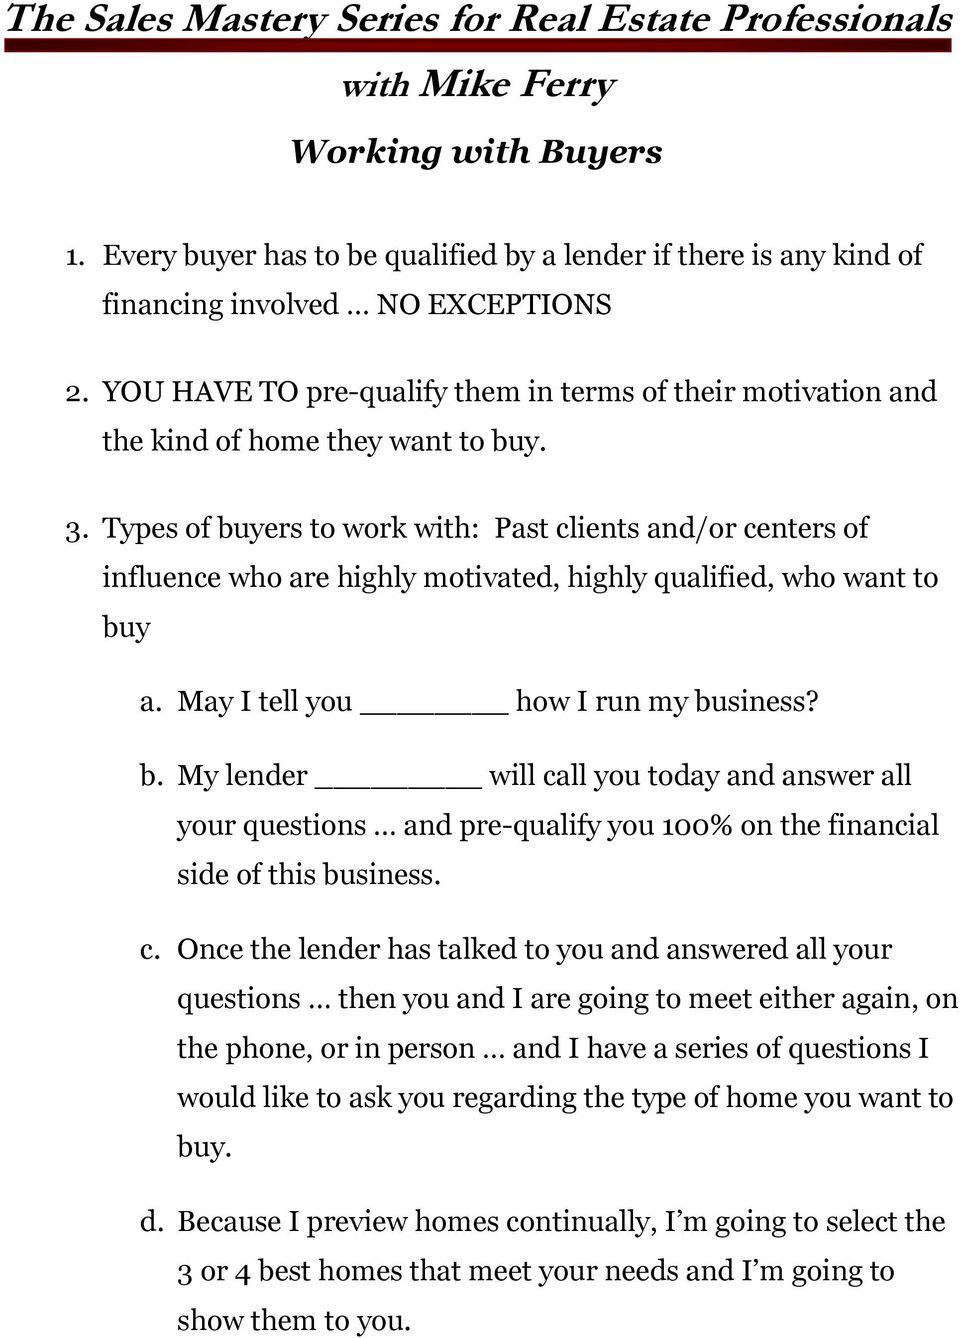 Types of buyers to work with: Past clients and/or centers of influence who are highly motivated, highly qualified, who want to buy a. May I tell you how I run my business? b. My lender will call you today and answer all your questions and pre-qualify you 100% on the financial side of this business.